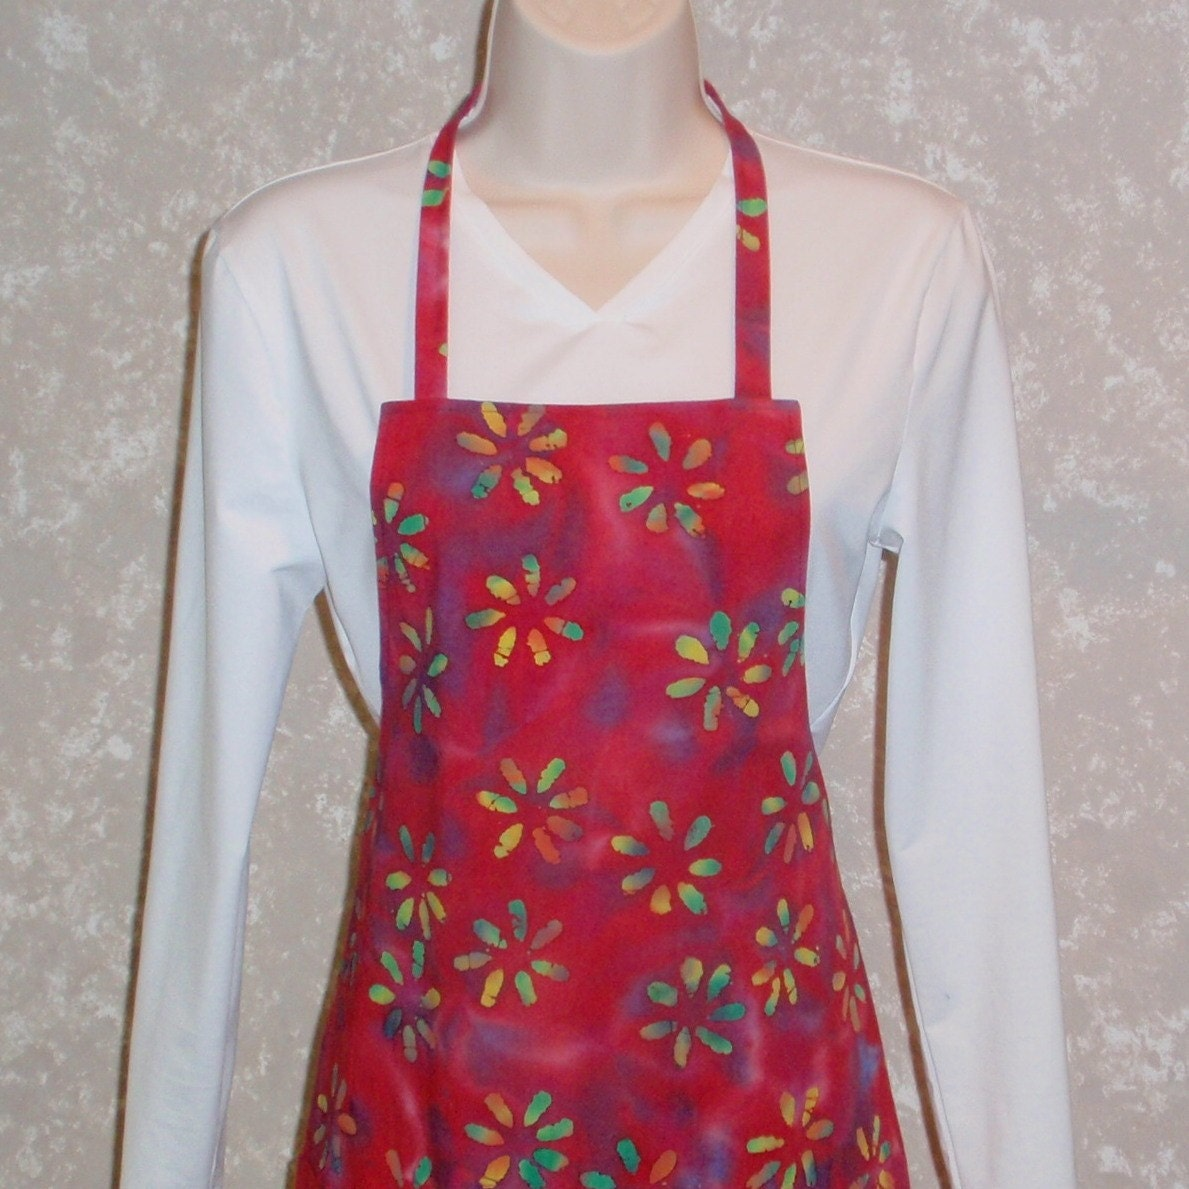 Apron Red Batik Floral Reversible - Small Adult or Older Child Size - ksewingbasket